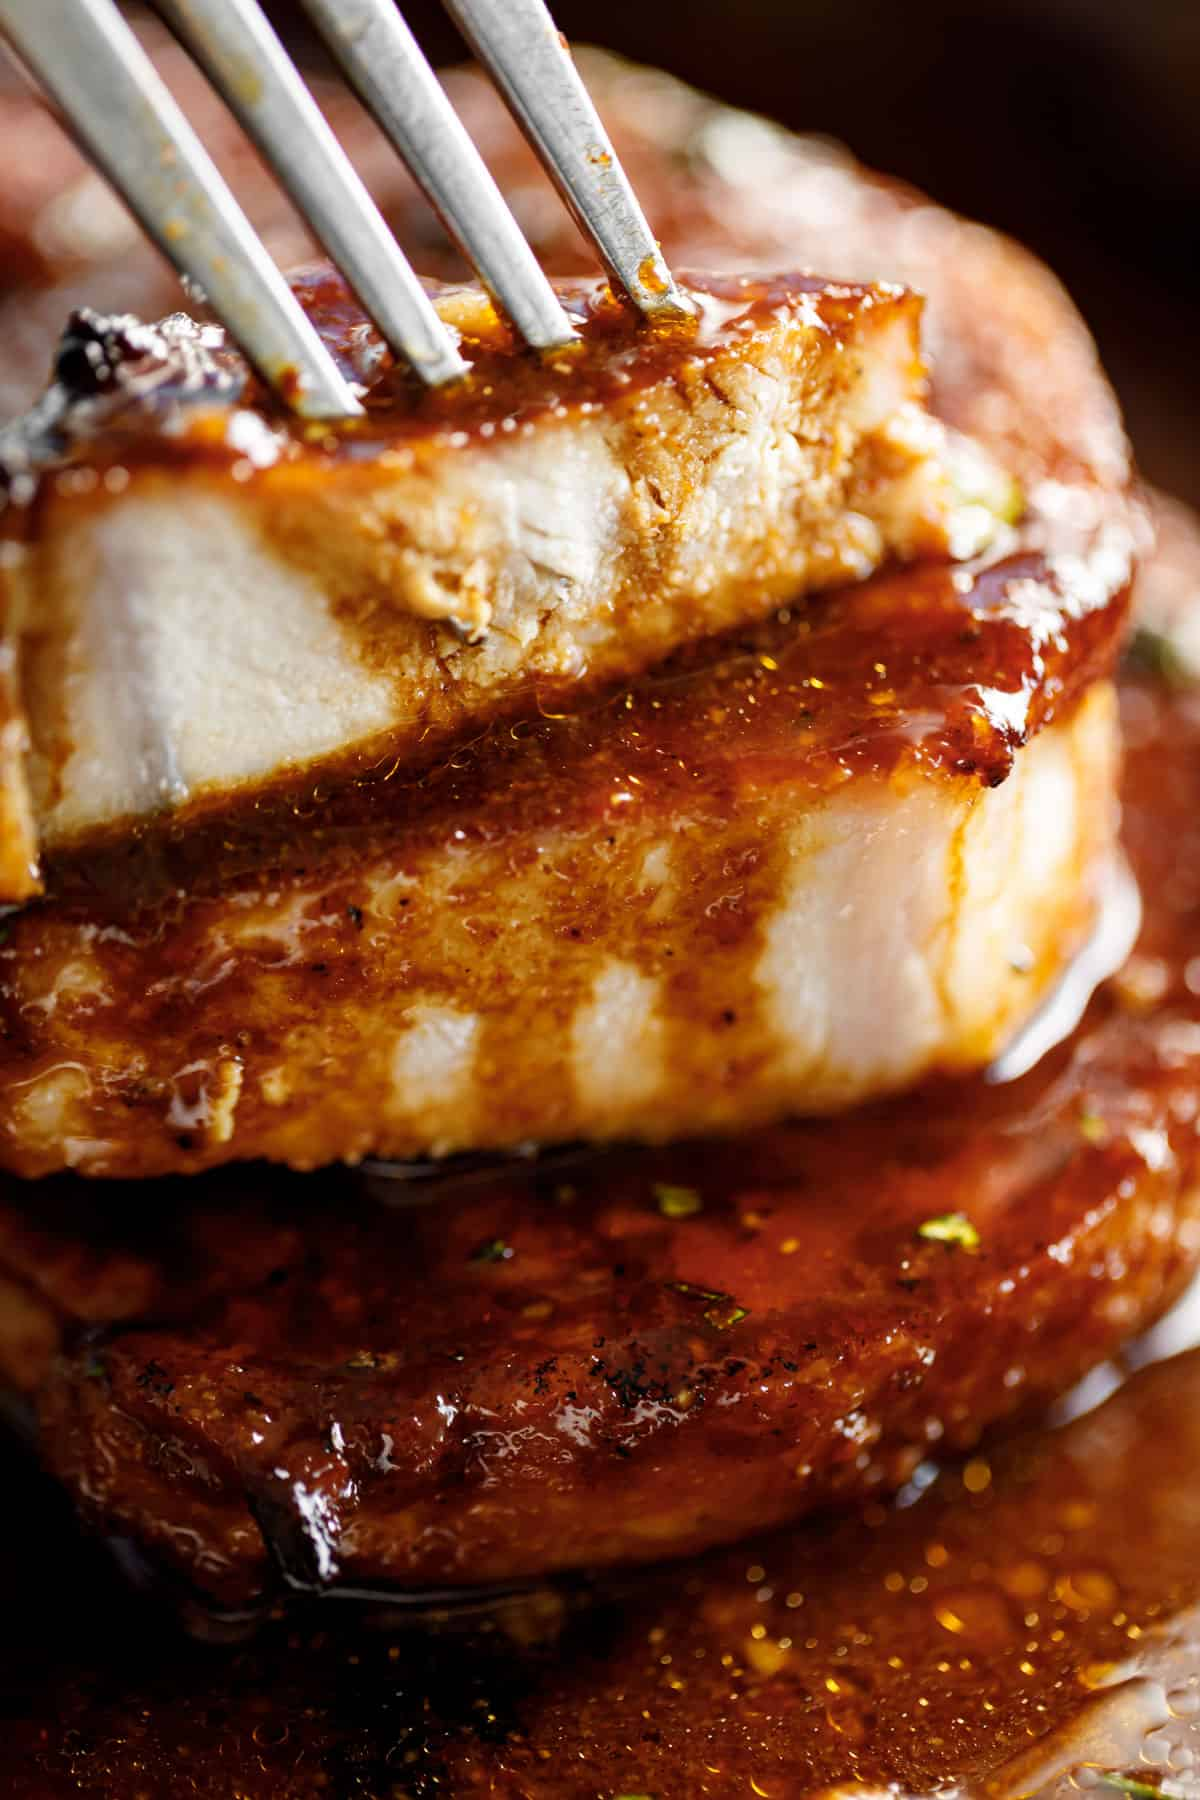 Juicy sliced pork chops drizzled with sauce | cafedelites.com